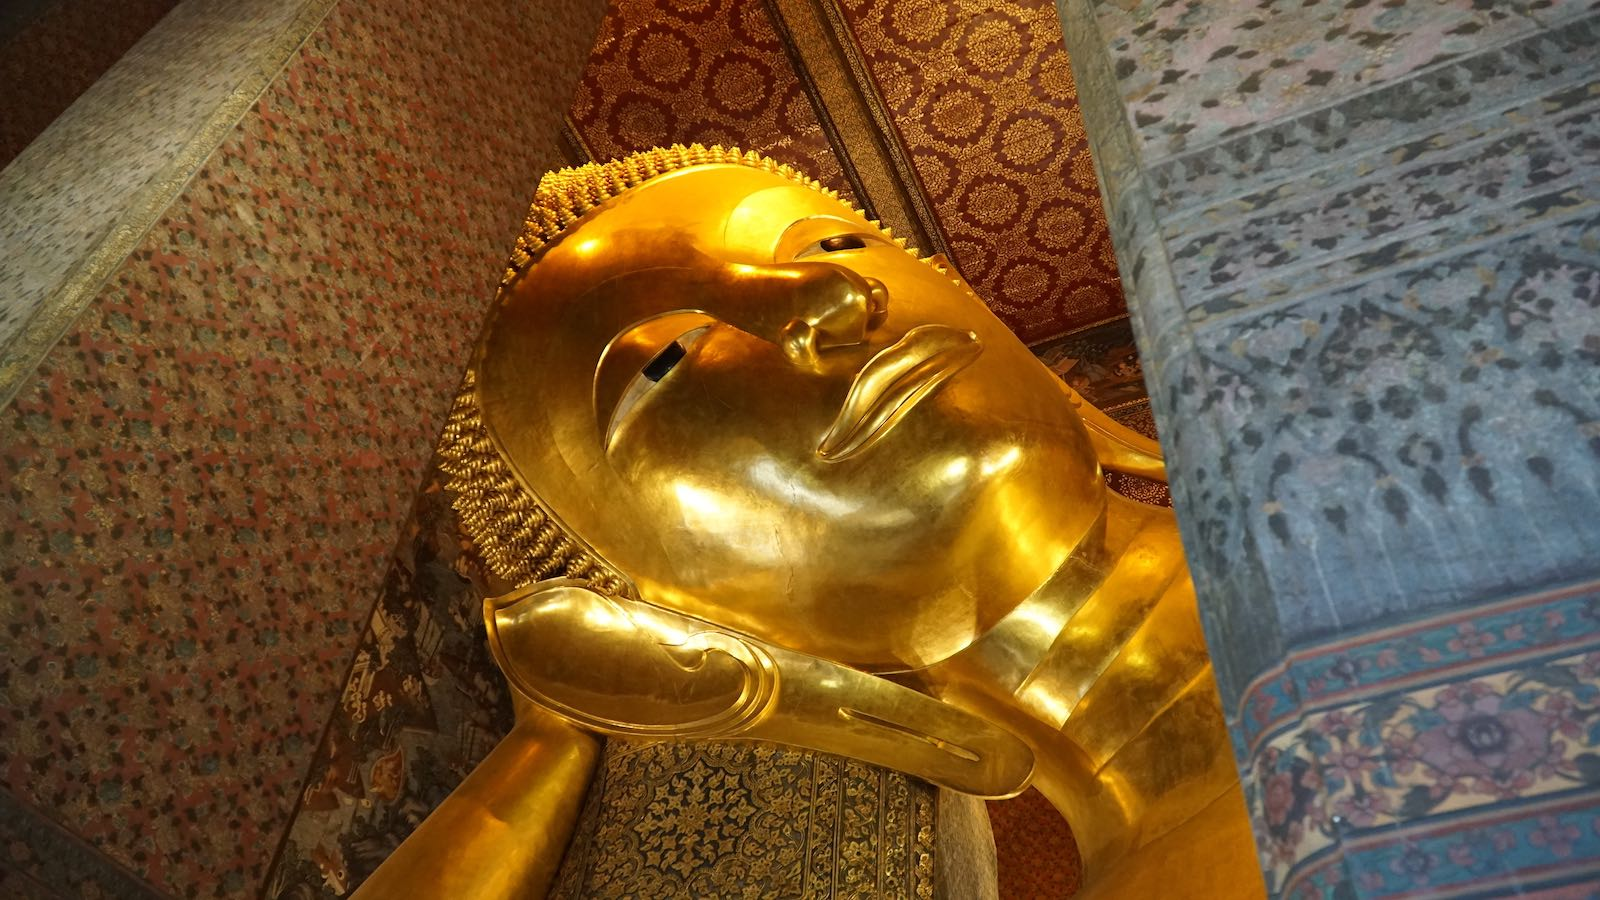 After the hectic sunrise by the riverbanks I went over to another temple complex called Wat Pho. Saw this giant golden super relaxed reclining Buddha who instantly became one of my role models in life.